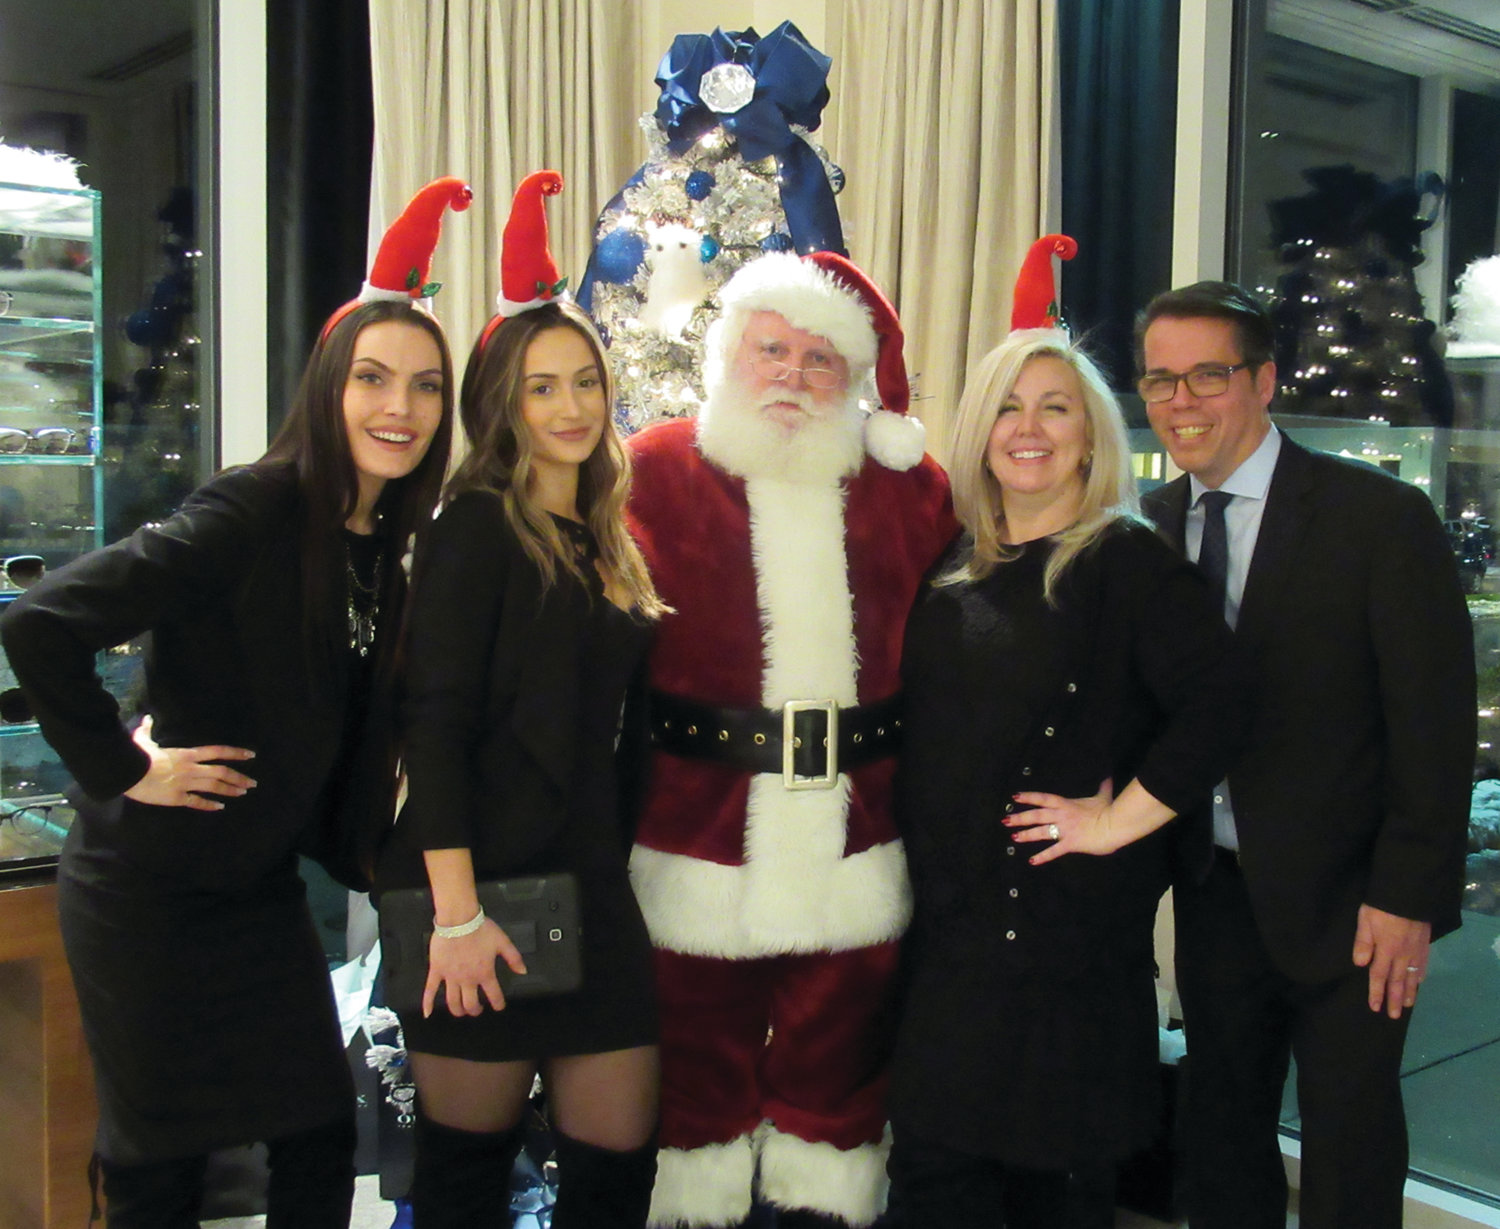 SANTA'S STAFF: Santa Claus made a special appearance during the recent Gucci Extravaganza at OPTX Rhode Island in Johnston and is joined by, from left, Livia Stencel, Jess Santos, CEO Lynne Diamante and Dr. Giulio Diamante.